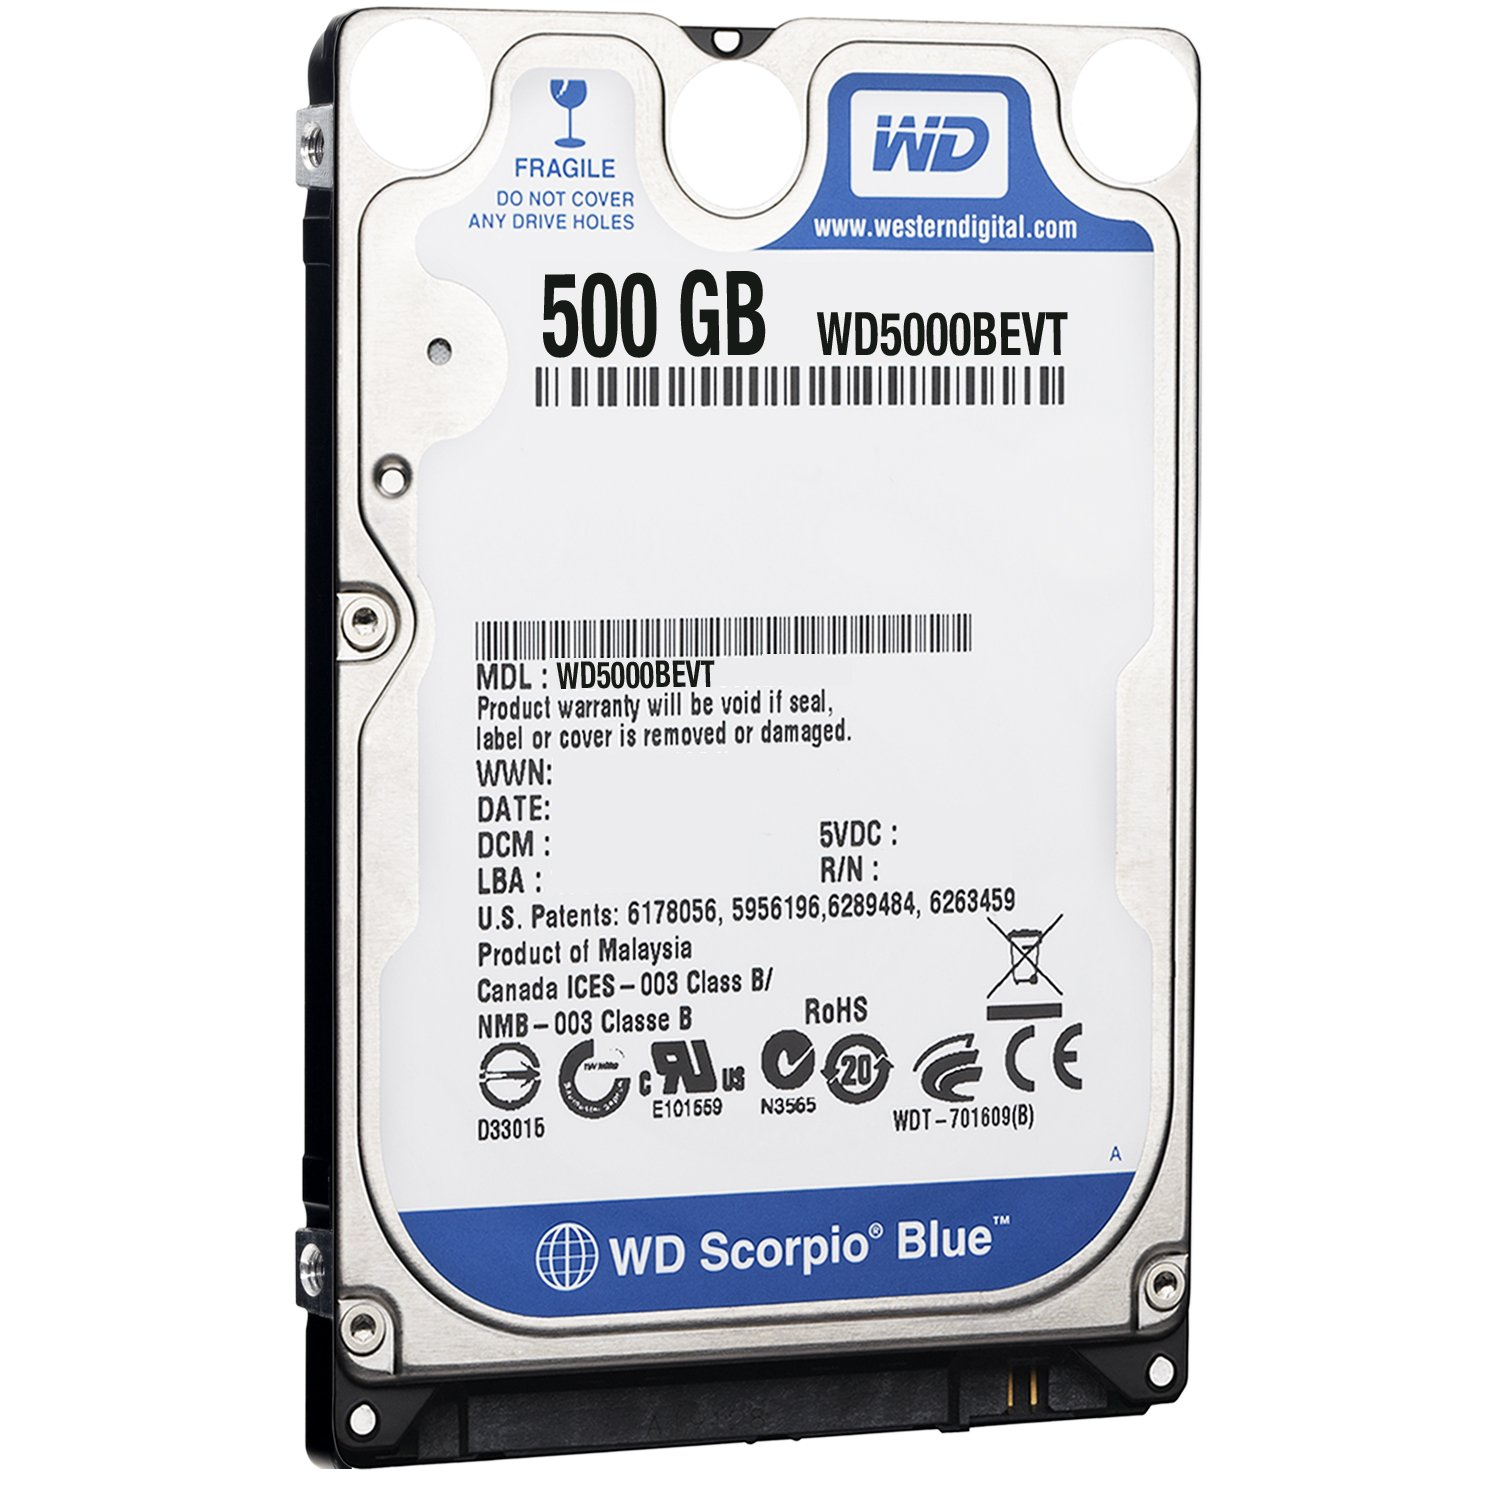 Western Digital Scorpio Blue 500gb Sata 8mb Cache 25 Inch Internal Hardisk Hard Drive Oem Sony Playstation Ps3 Compatible Computers Accessories